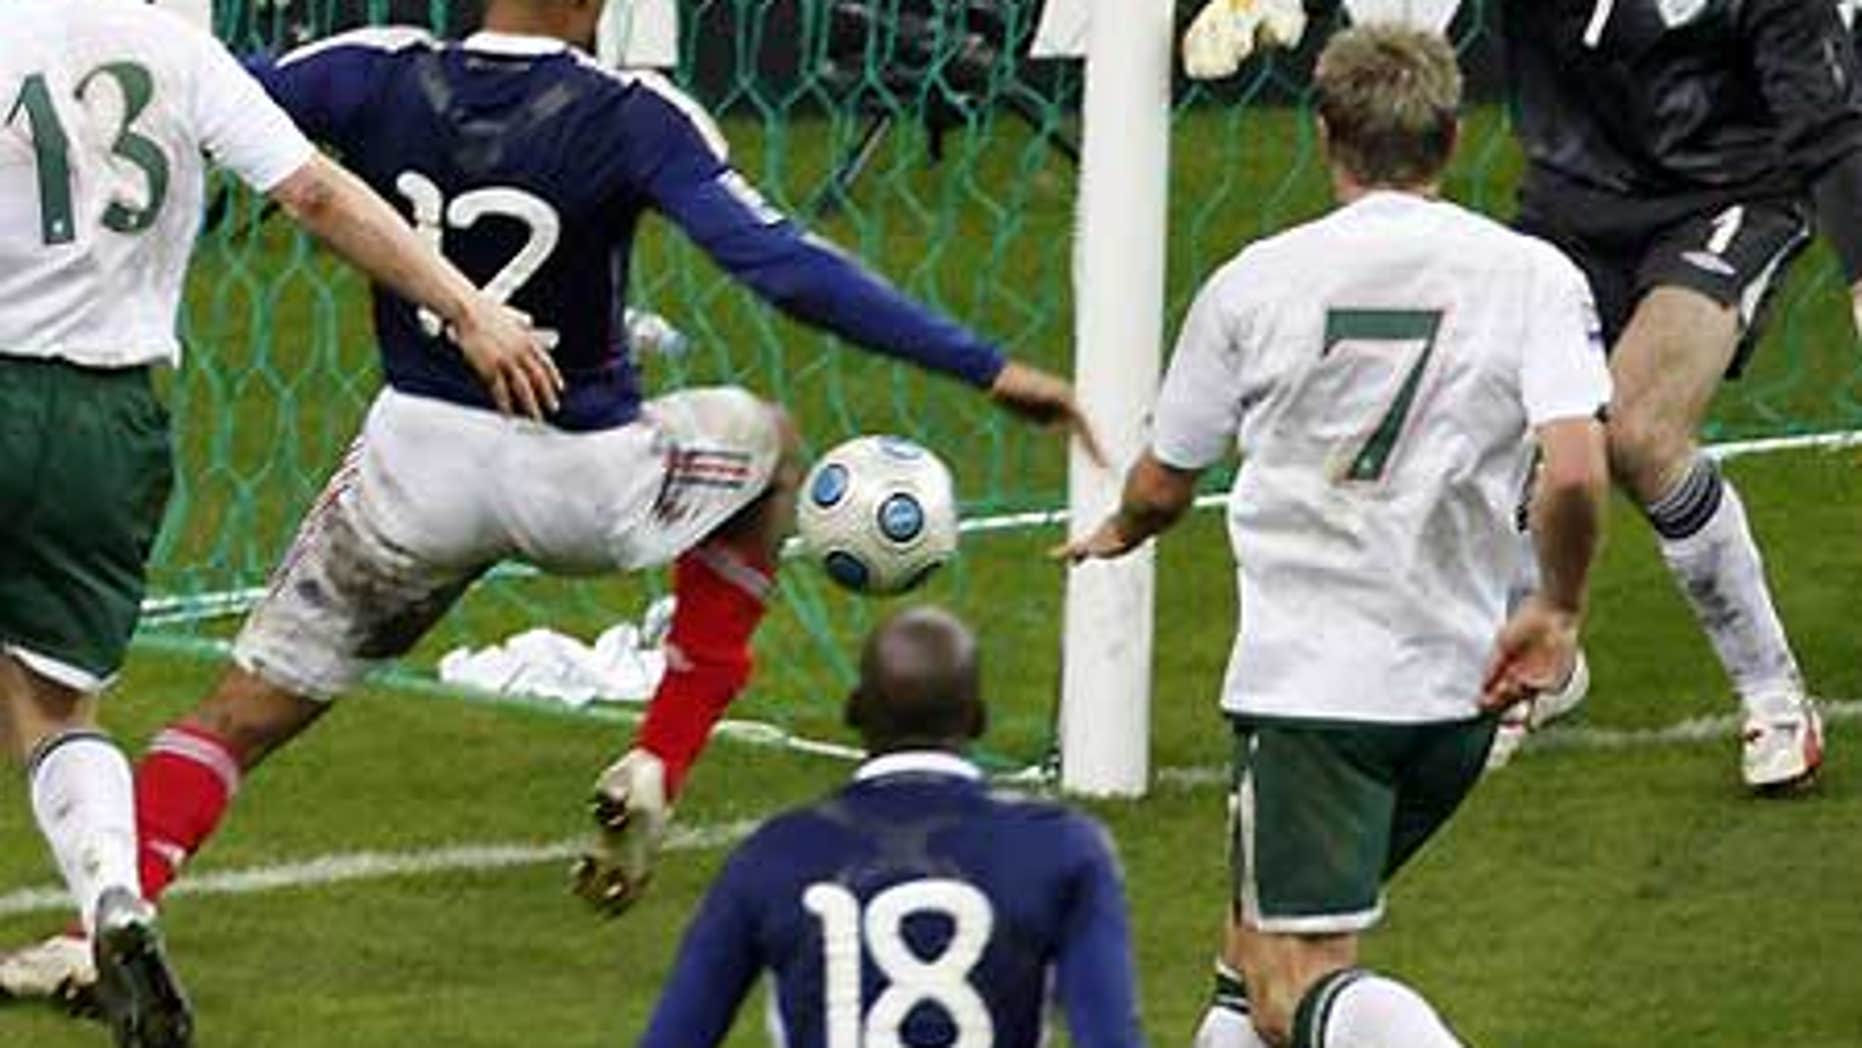 Nov. 18: France's Thierry Henry, second left, passes the ball just before William Gallas (unseen) scored goal for France during World Cup qualifyier.